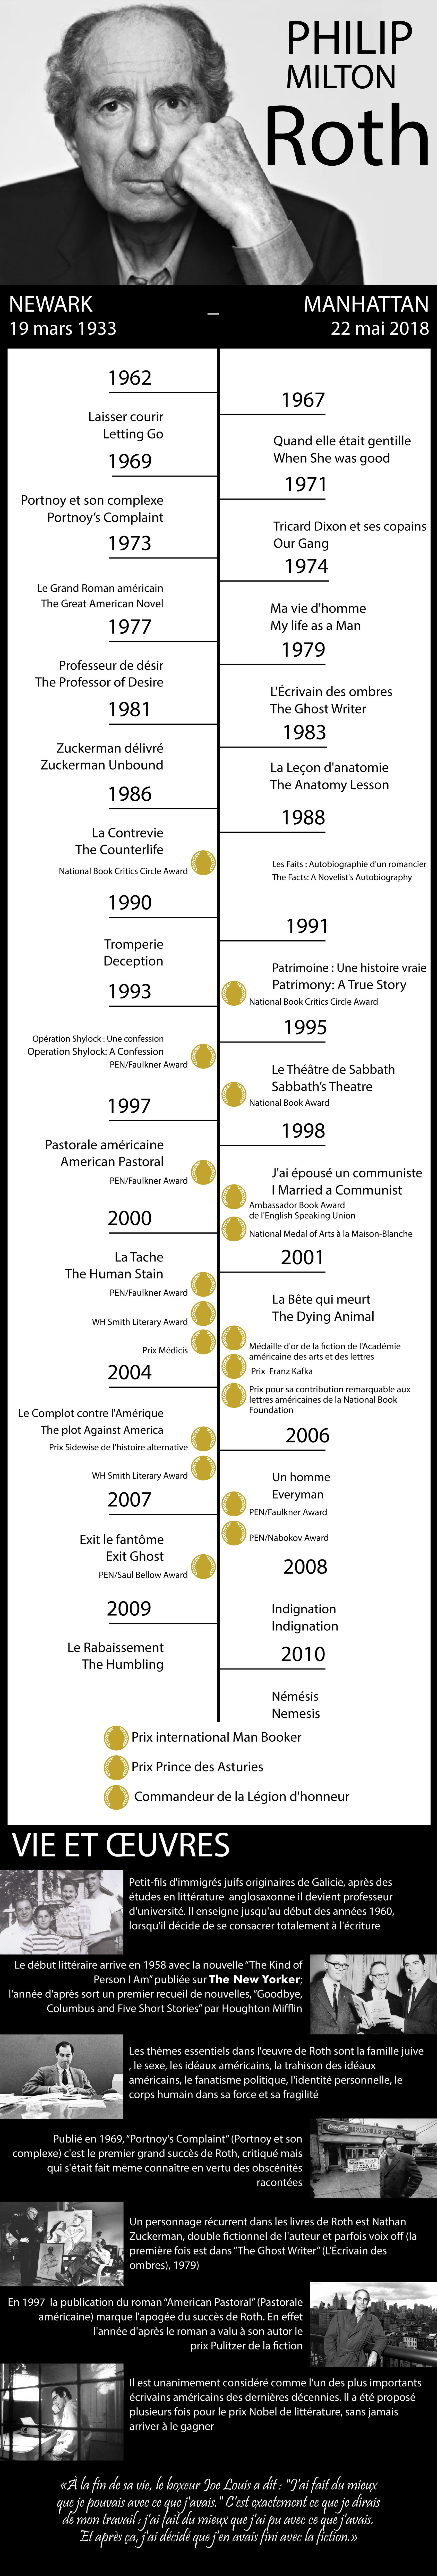 Philip Roth infographie